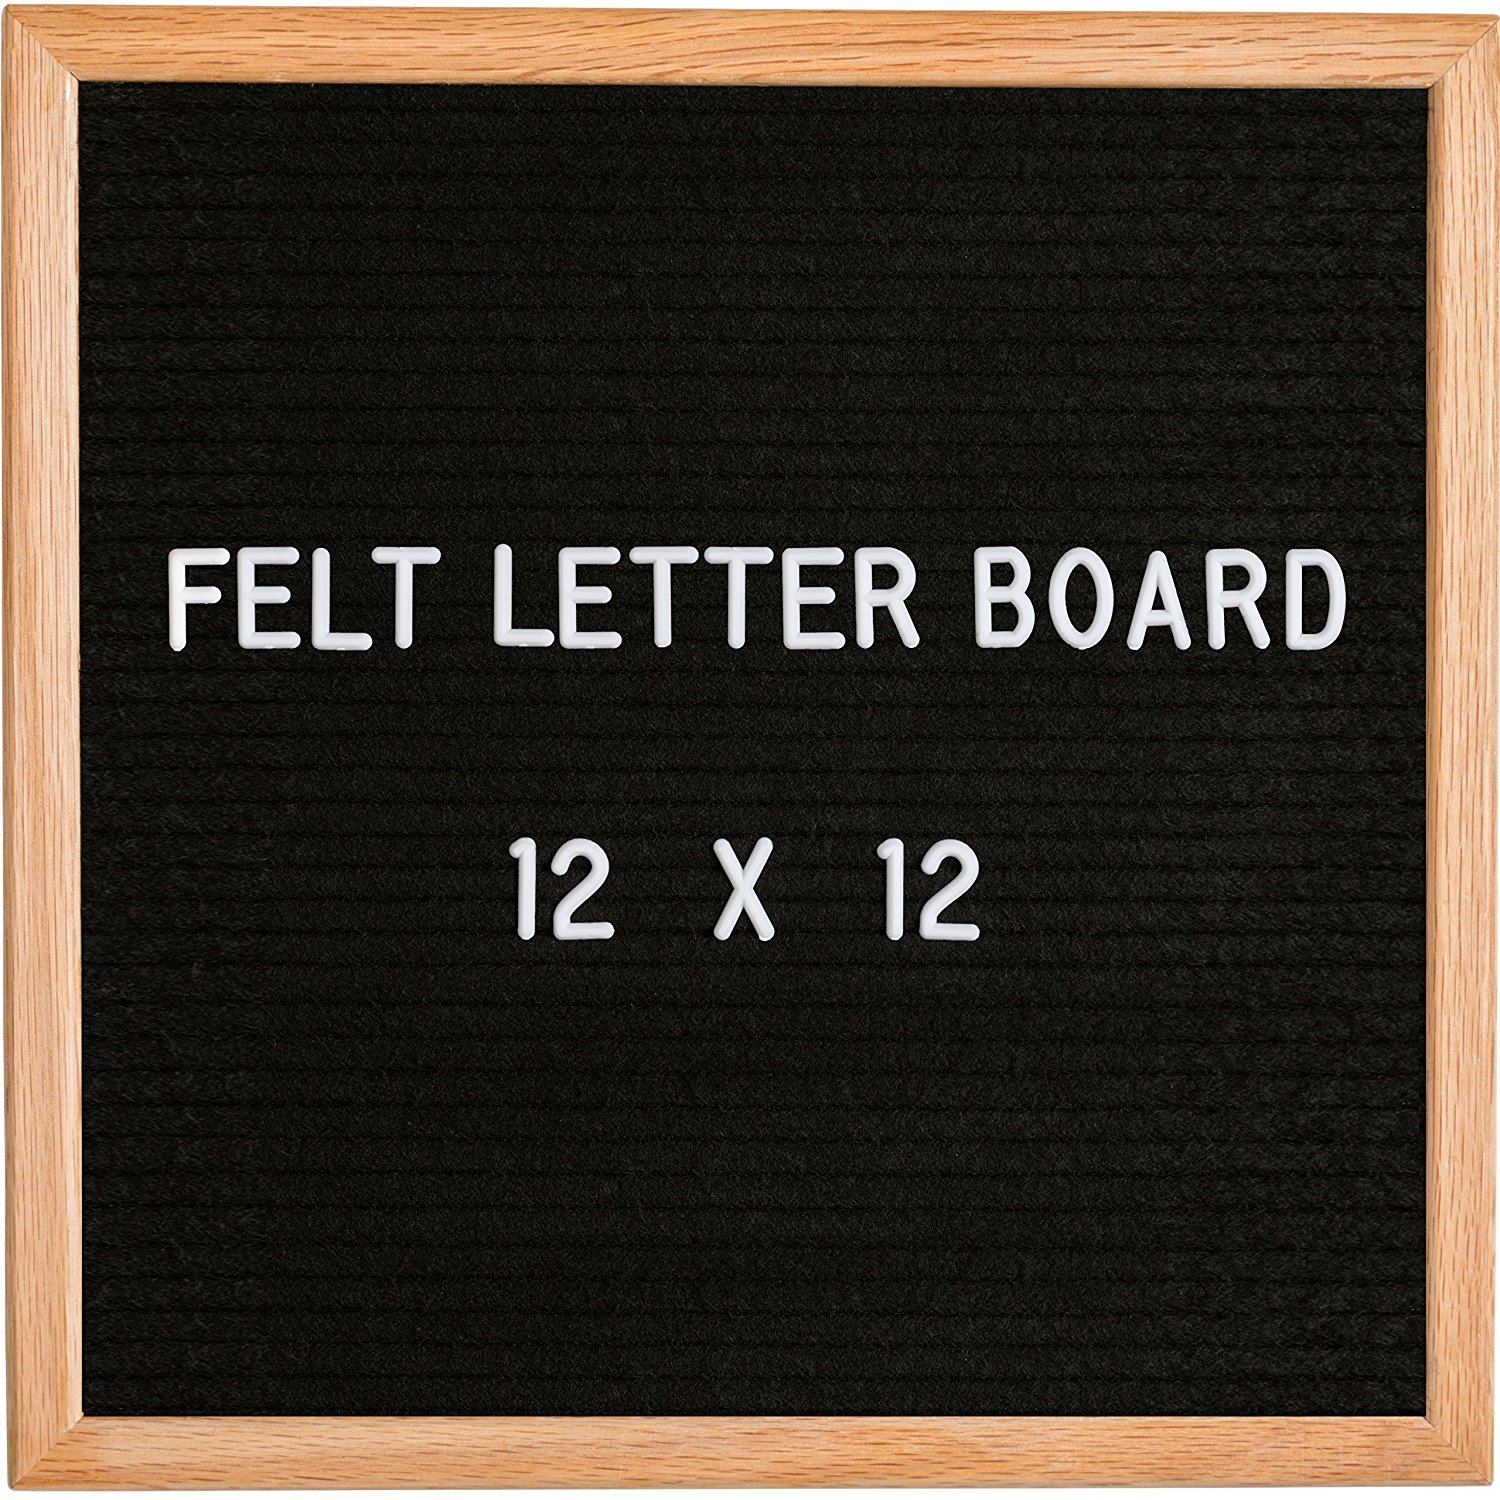 Black Felt Letter Board 12 x 12 | Comes with stand, Wall hook Mount, Canvas Bag, Oak Wood Frame, 360 White Letters and Special Characters